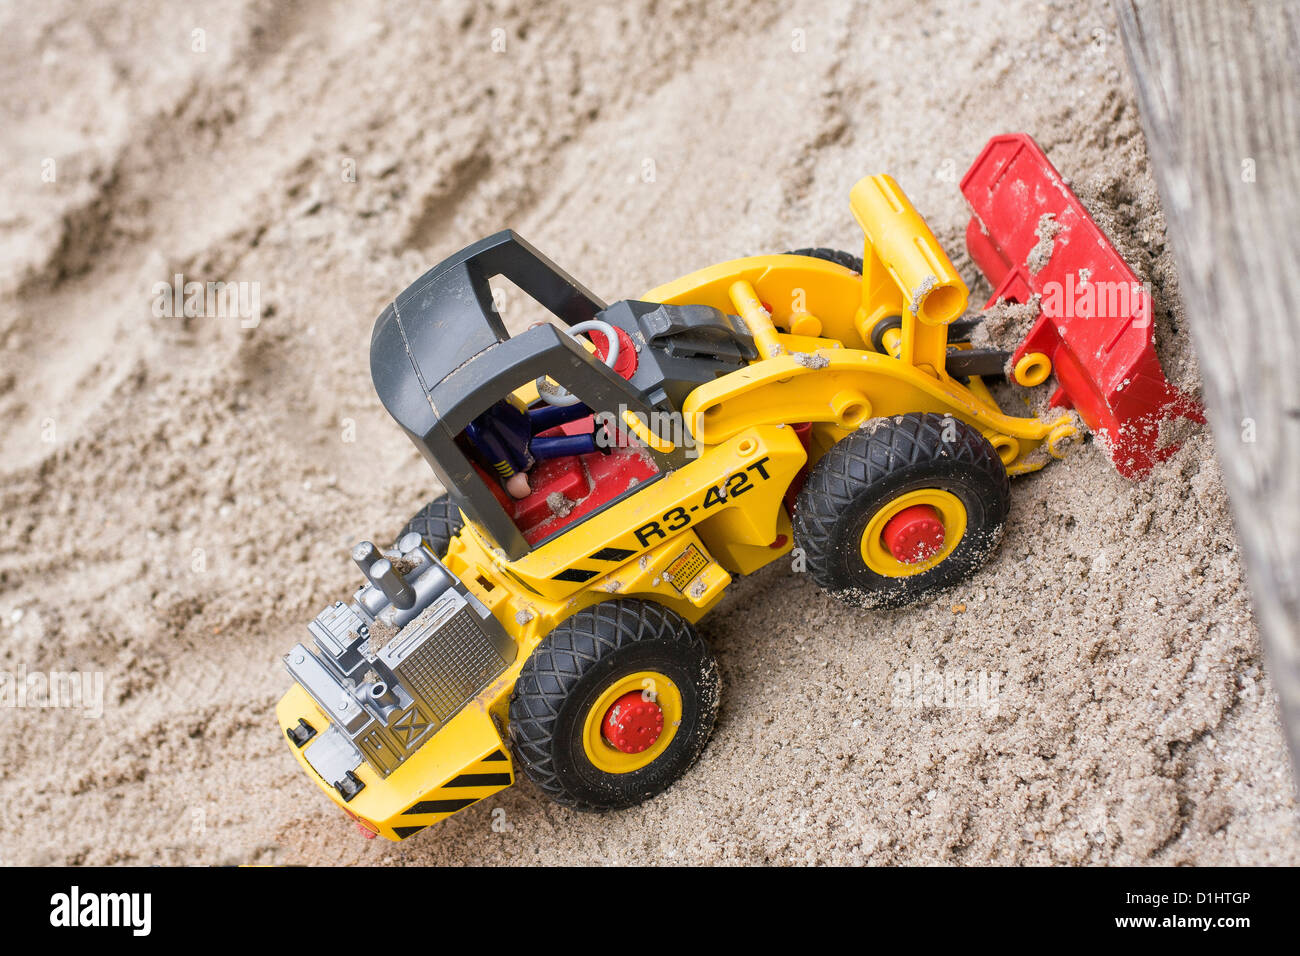 Bulldozer - a child's toy moves sand in a sand-pit - Stock Image